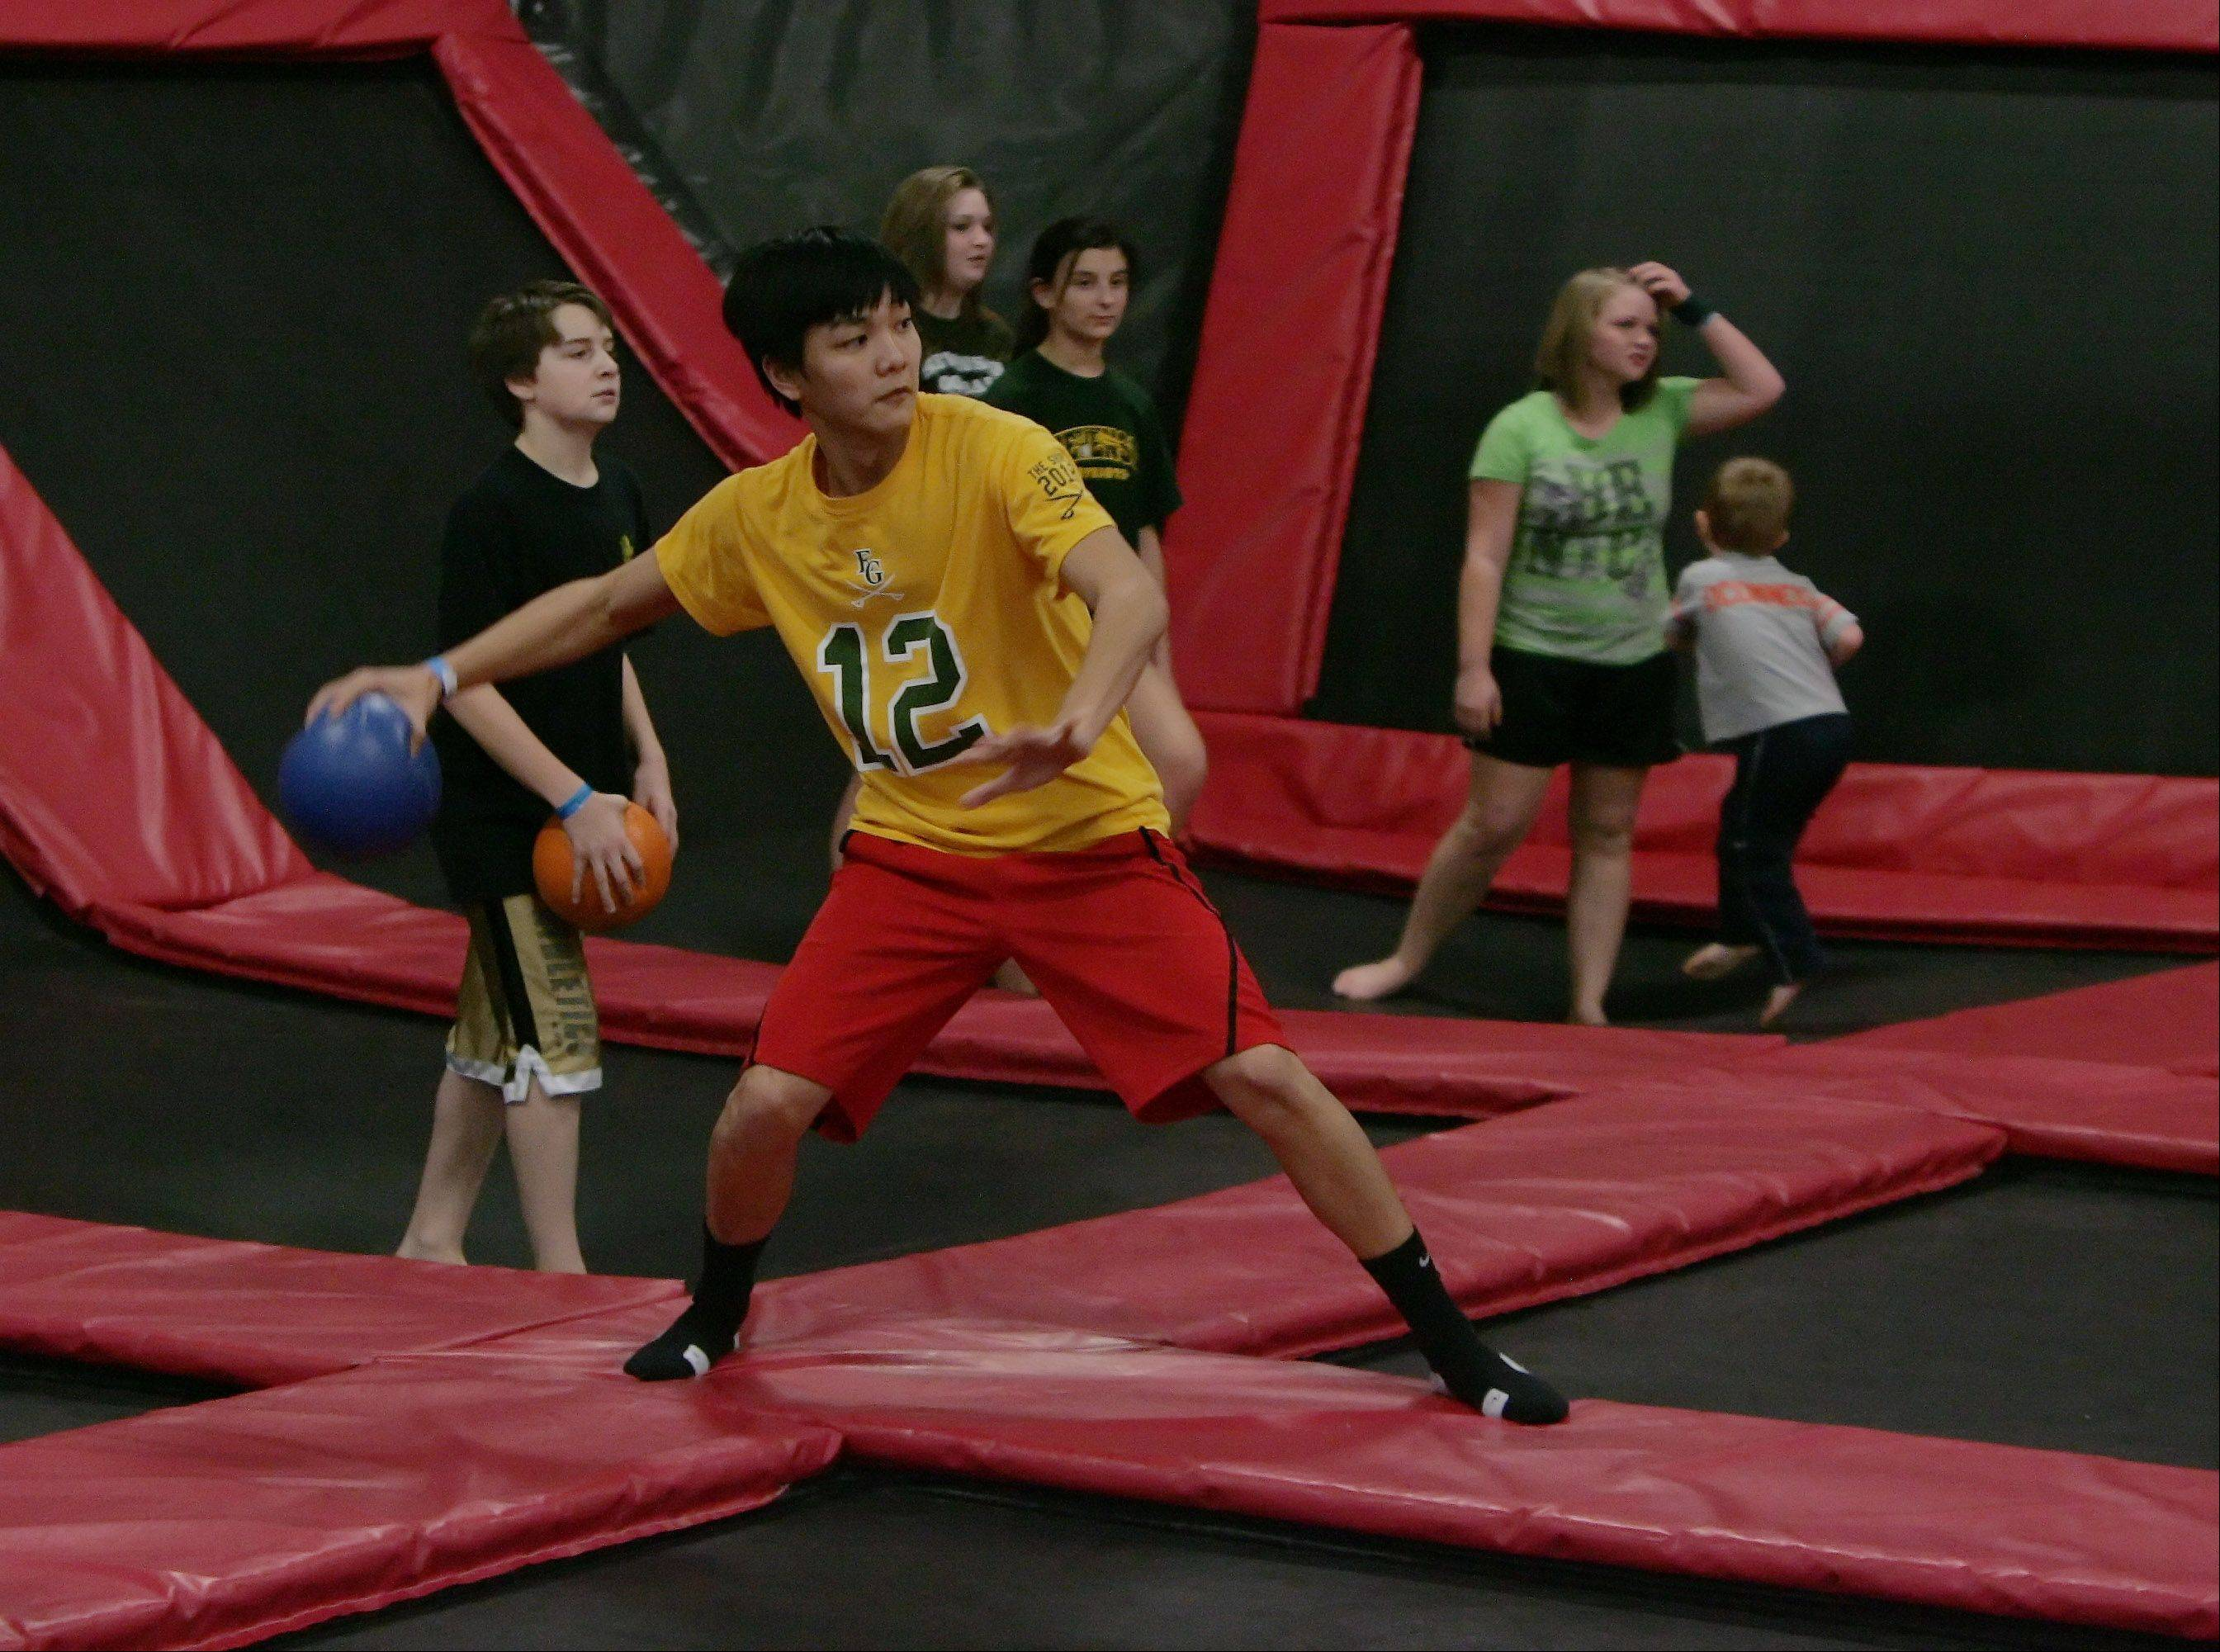 Kevin Huynh, 16, of Des Plaines, prepares to throw the ball in extreme dodgeball at Xtreme Trampolines in Buffalo Grove. The entertainment center offers an active alternative for kids in the suburbs.